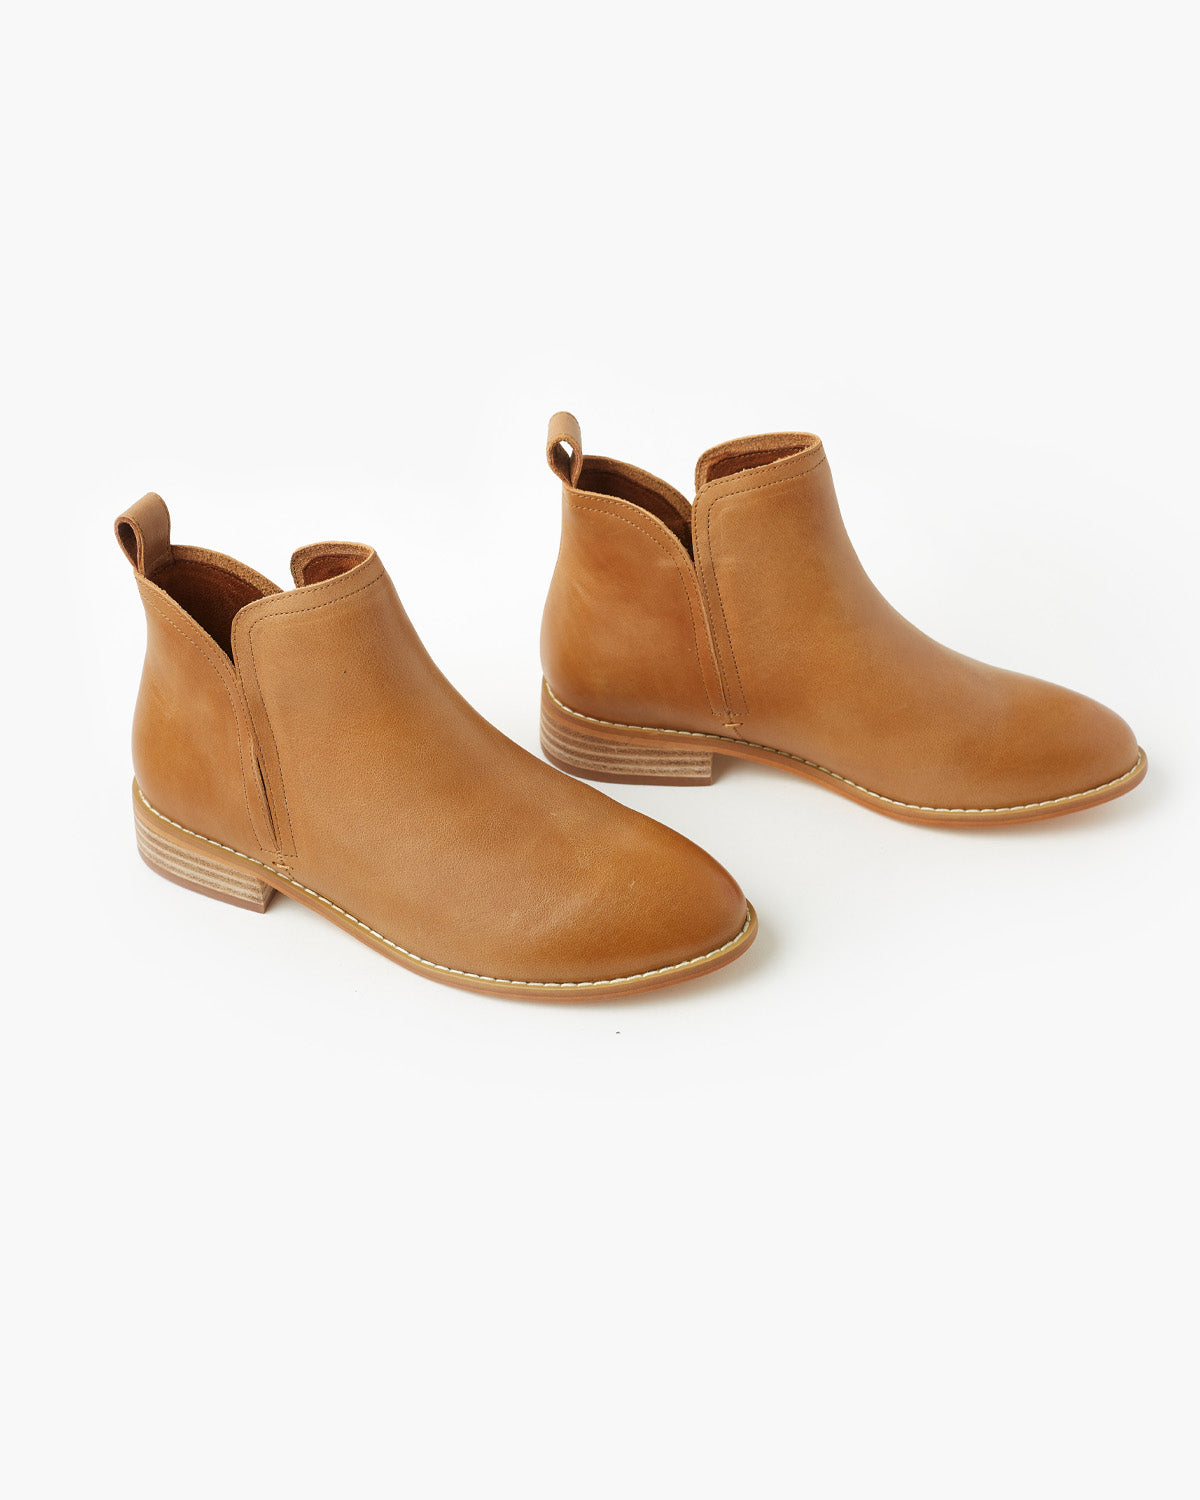 Douglas Leather Ankle Boot - Tan